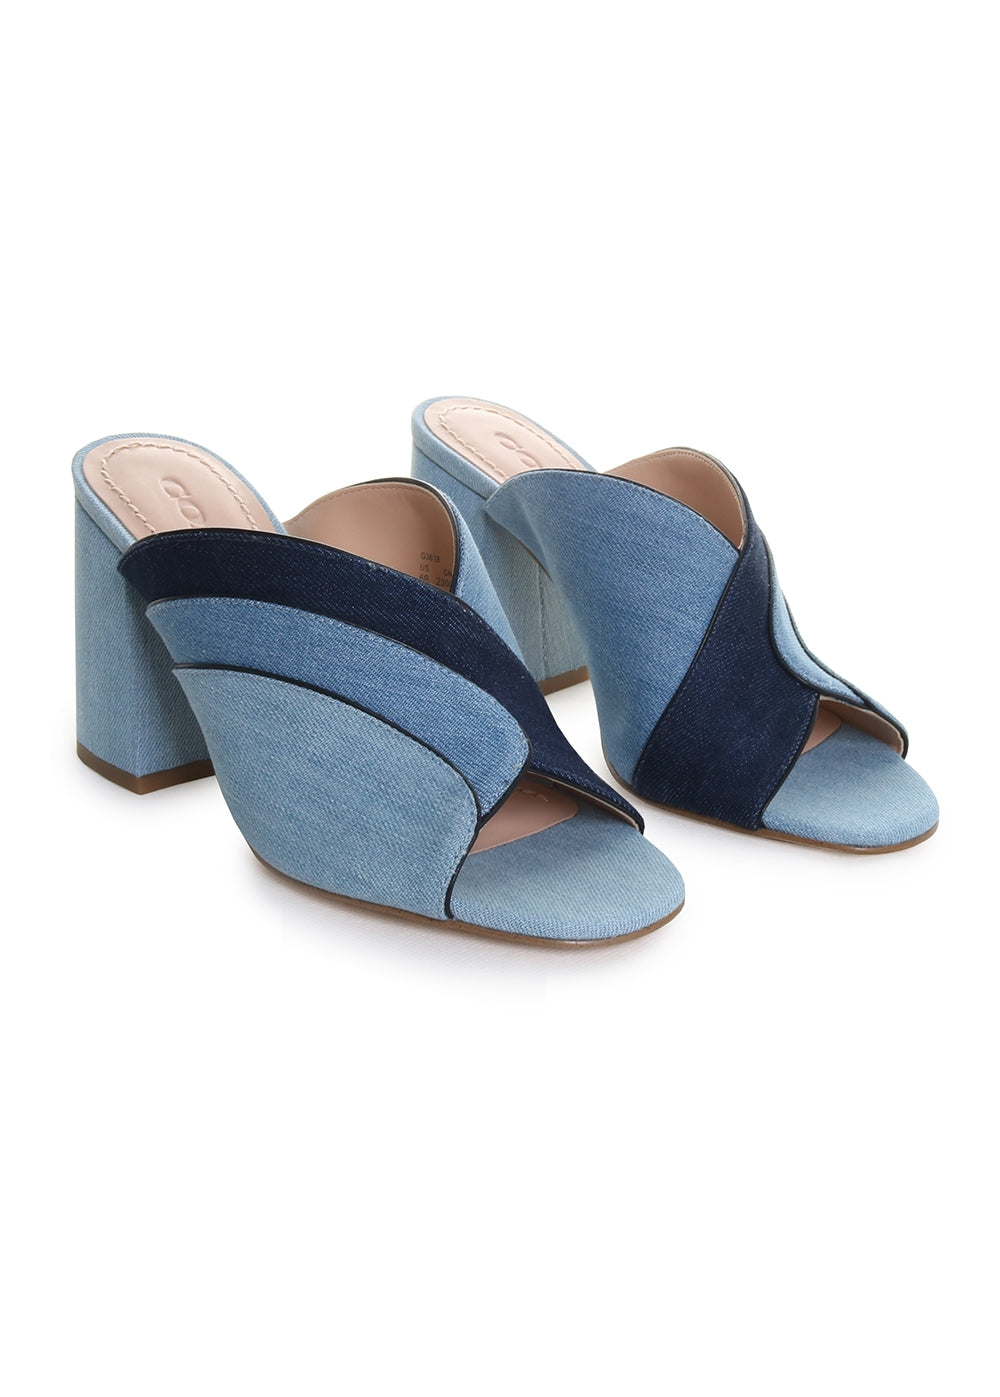 Bria Mule in Denim Multi